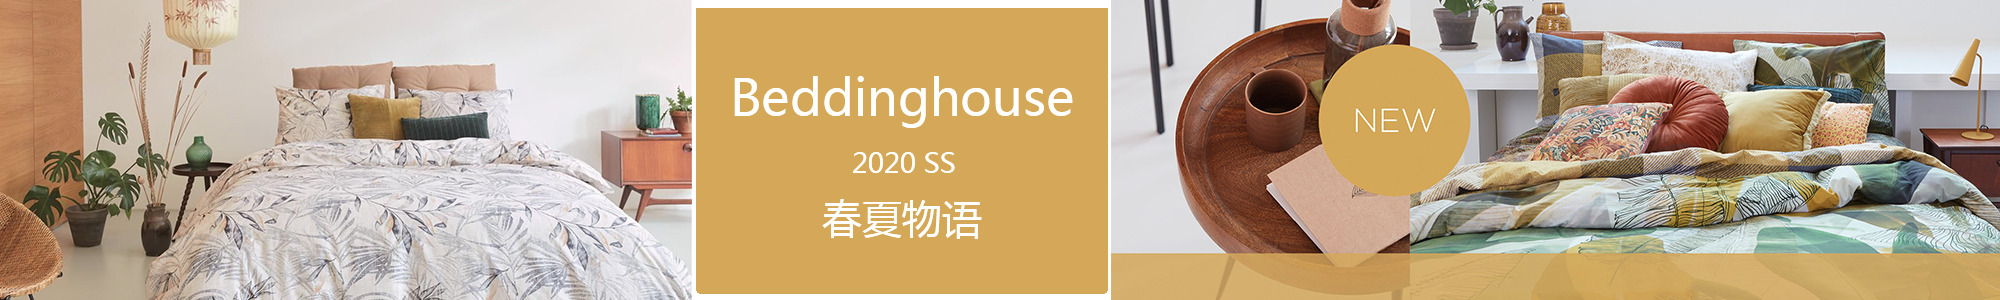 Beddinghouse 2020春夏